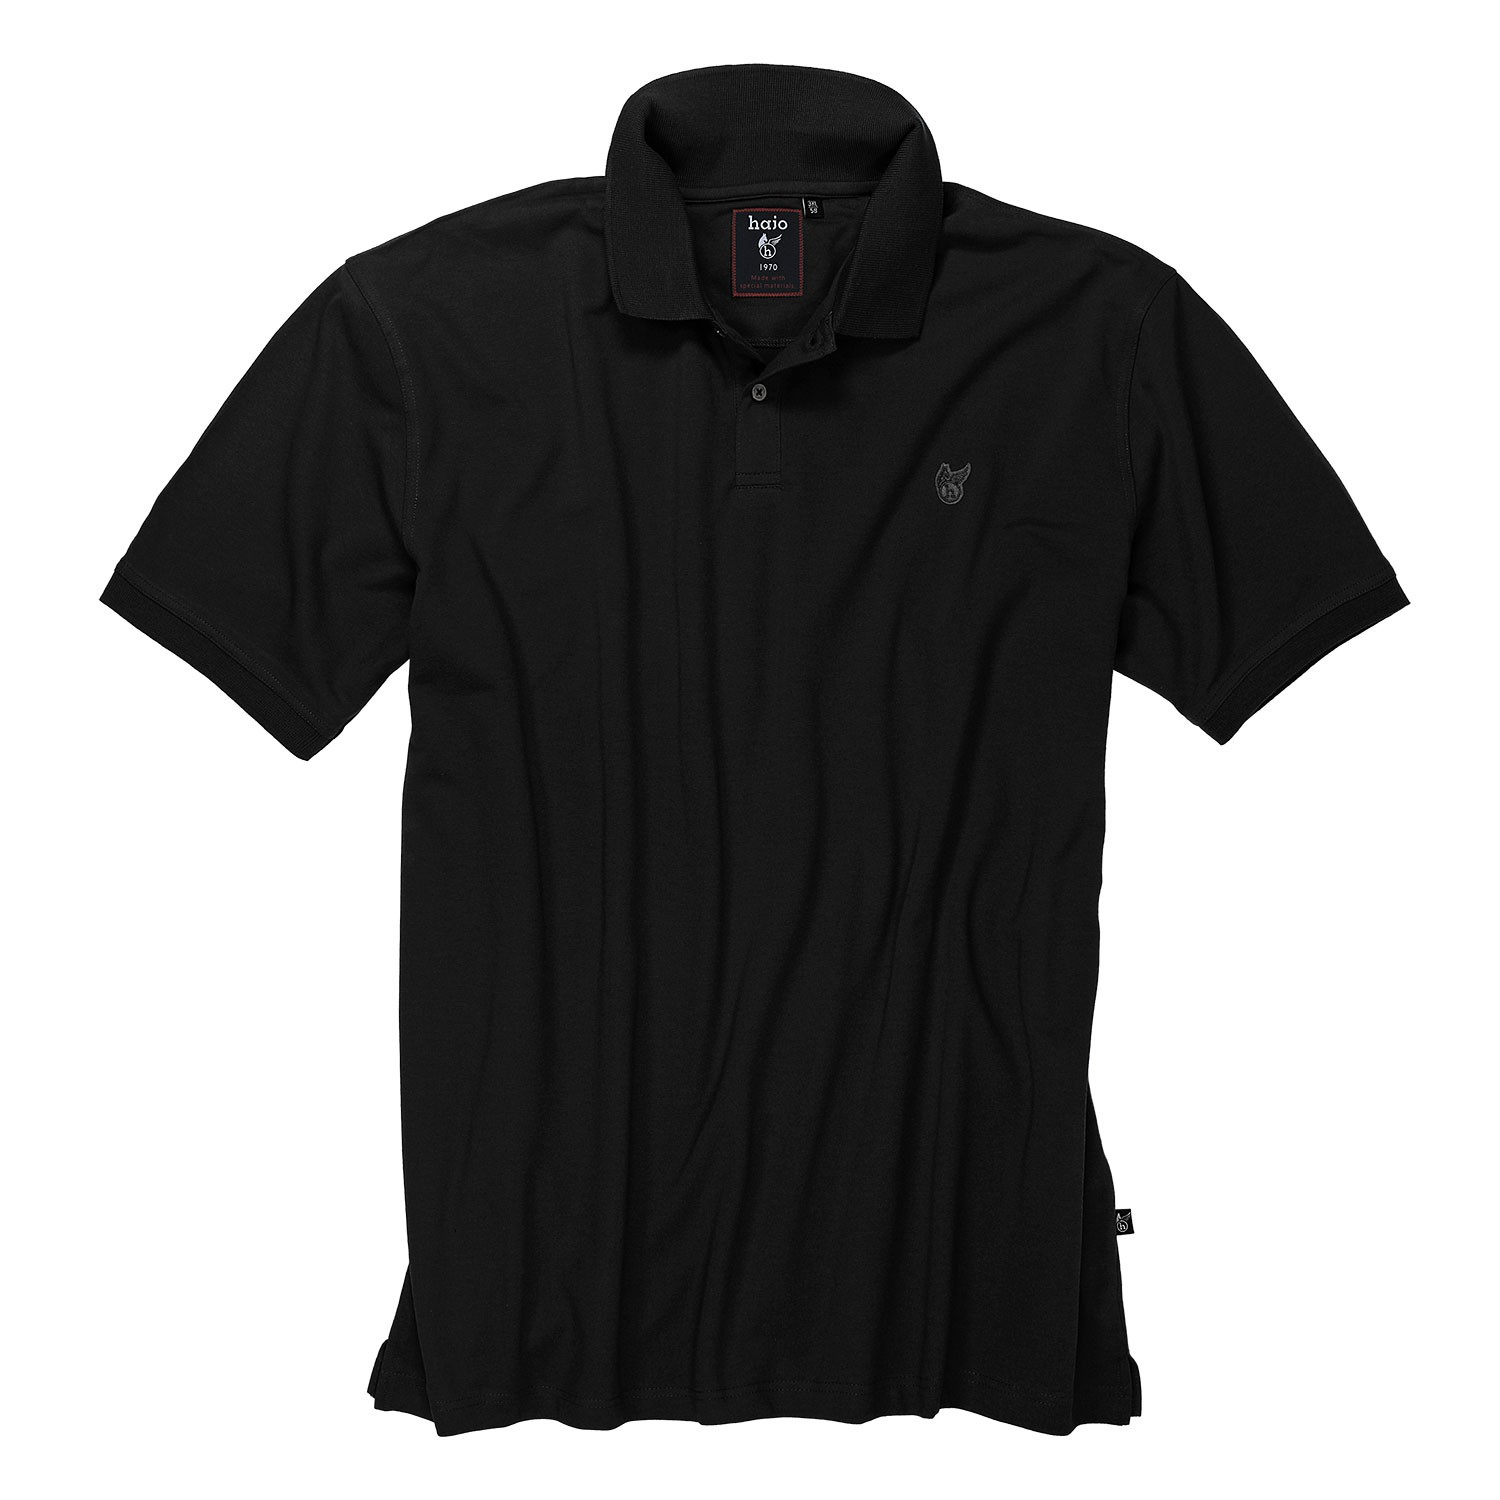 "Detail Image to Polo shirt ""stay fresh"" in black by hajo up to oversize 7XL"